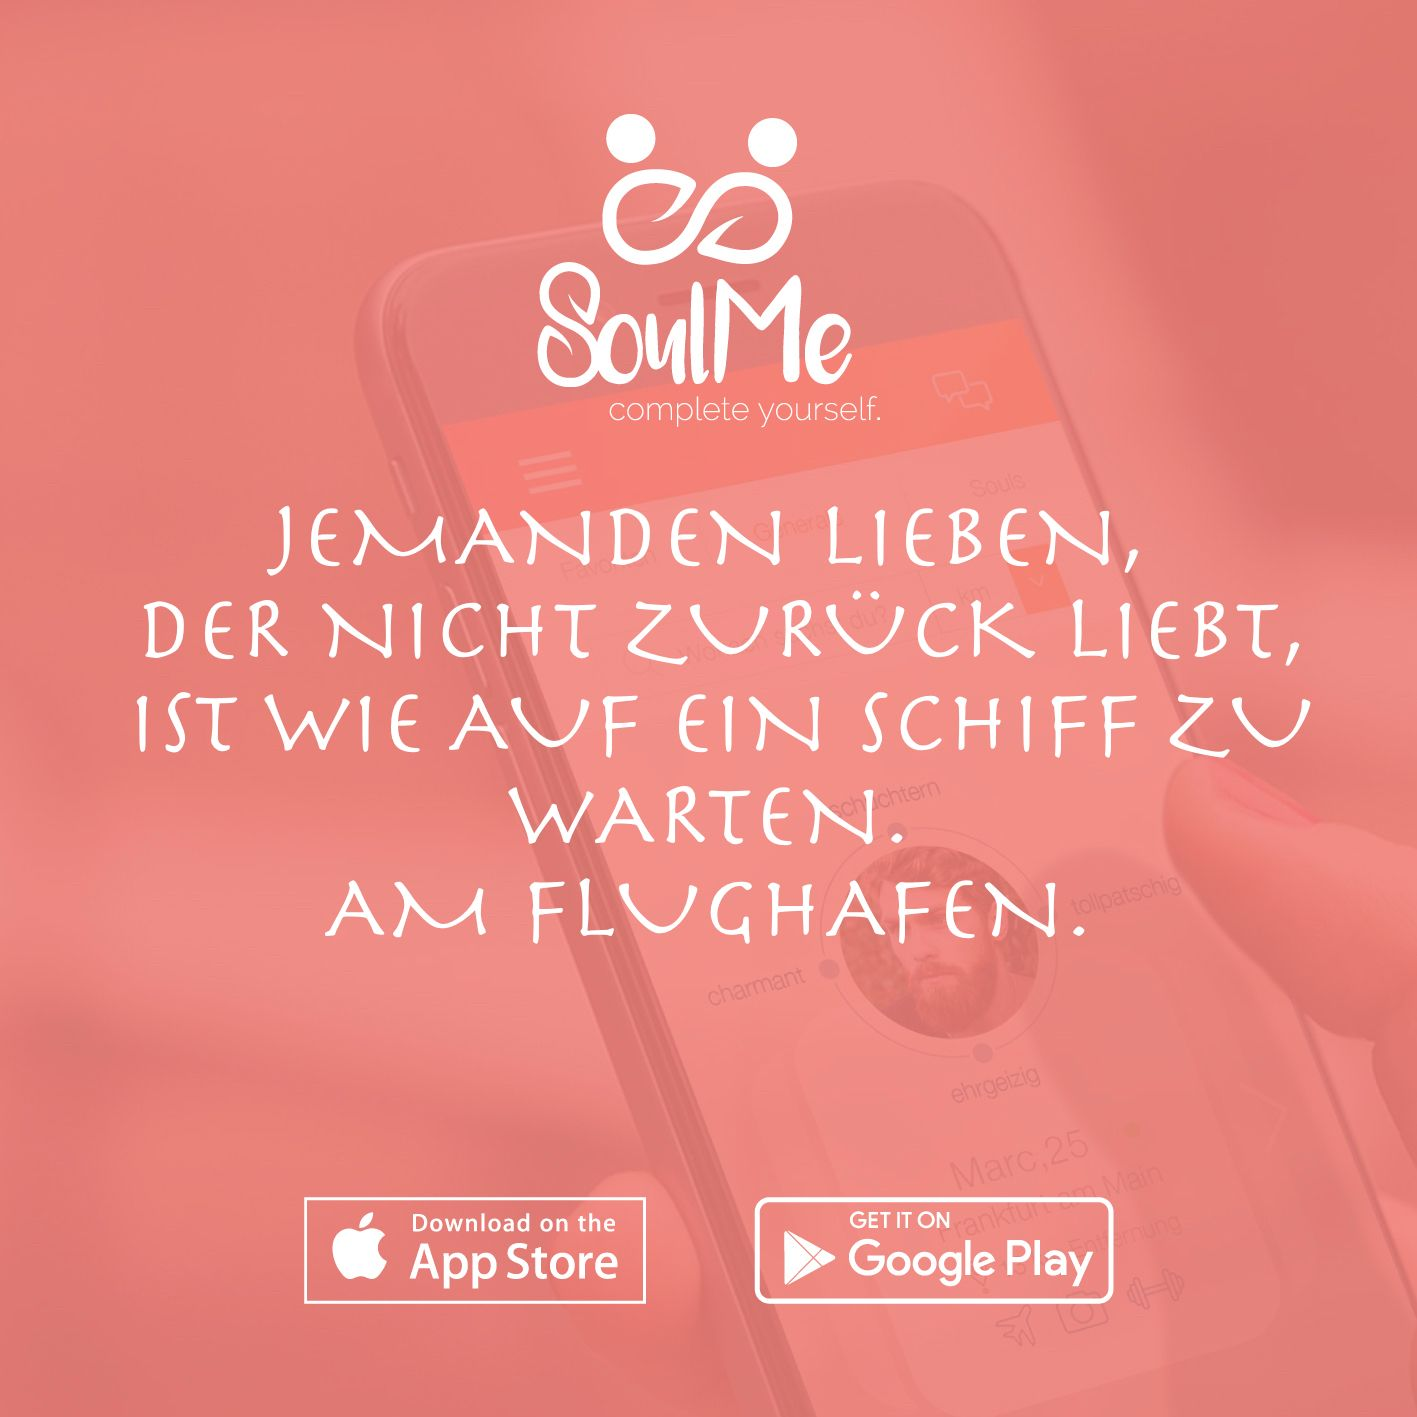 Dating-apps wie schiff